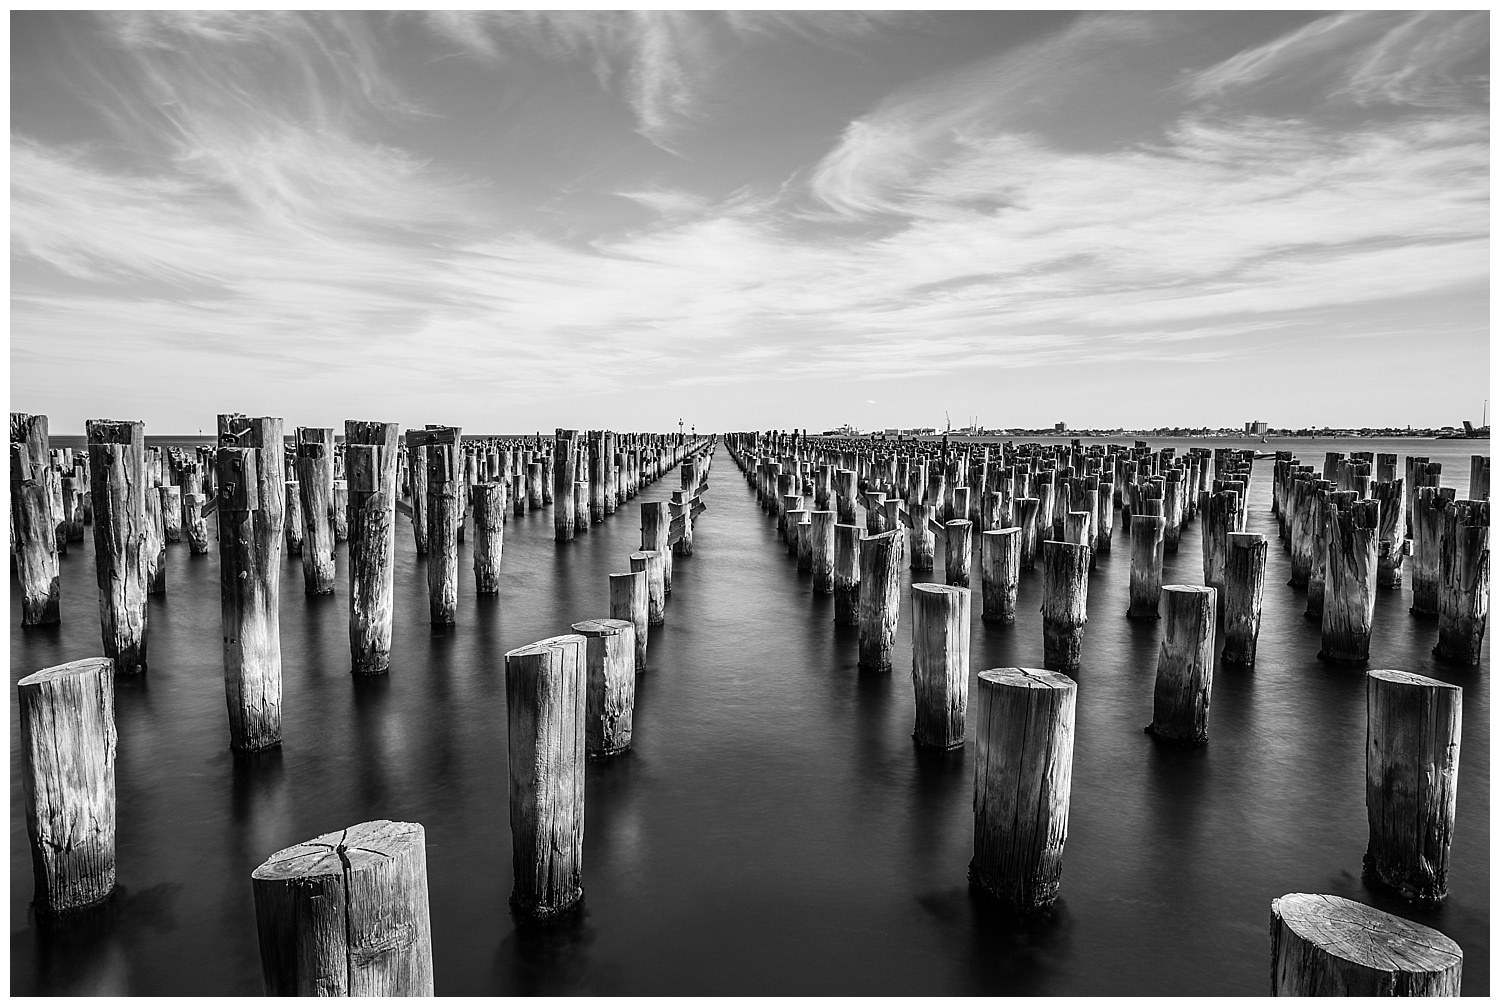 Princess Pier, B&W  Canon 6D + 17-35mm F4/L USM @23mm  Shutter speed: 4.3 seconds  Apeture; f 9.0  ISO: 100  HOYA 10 stop neutral density filter